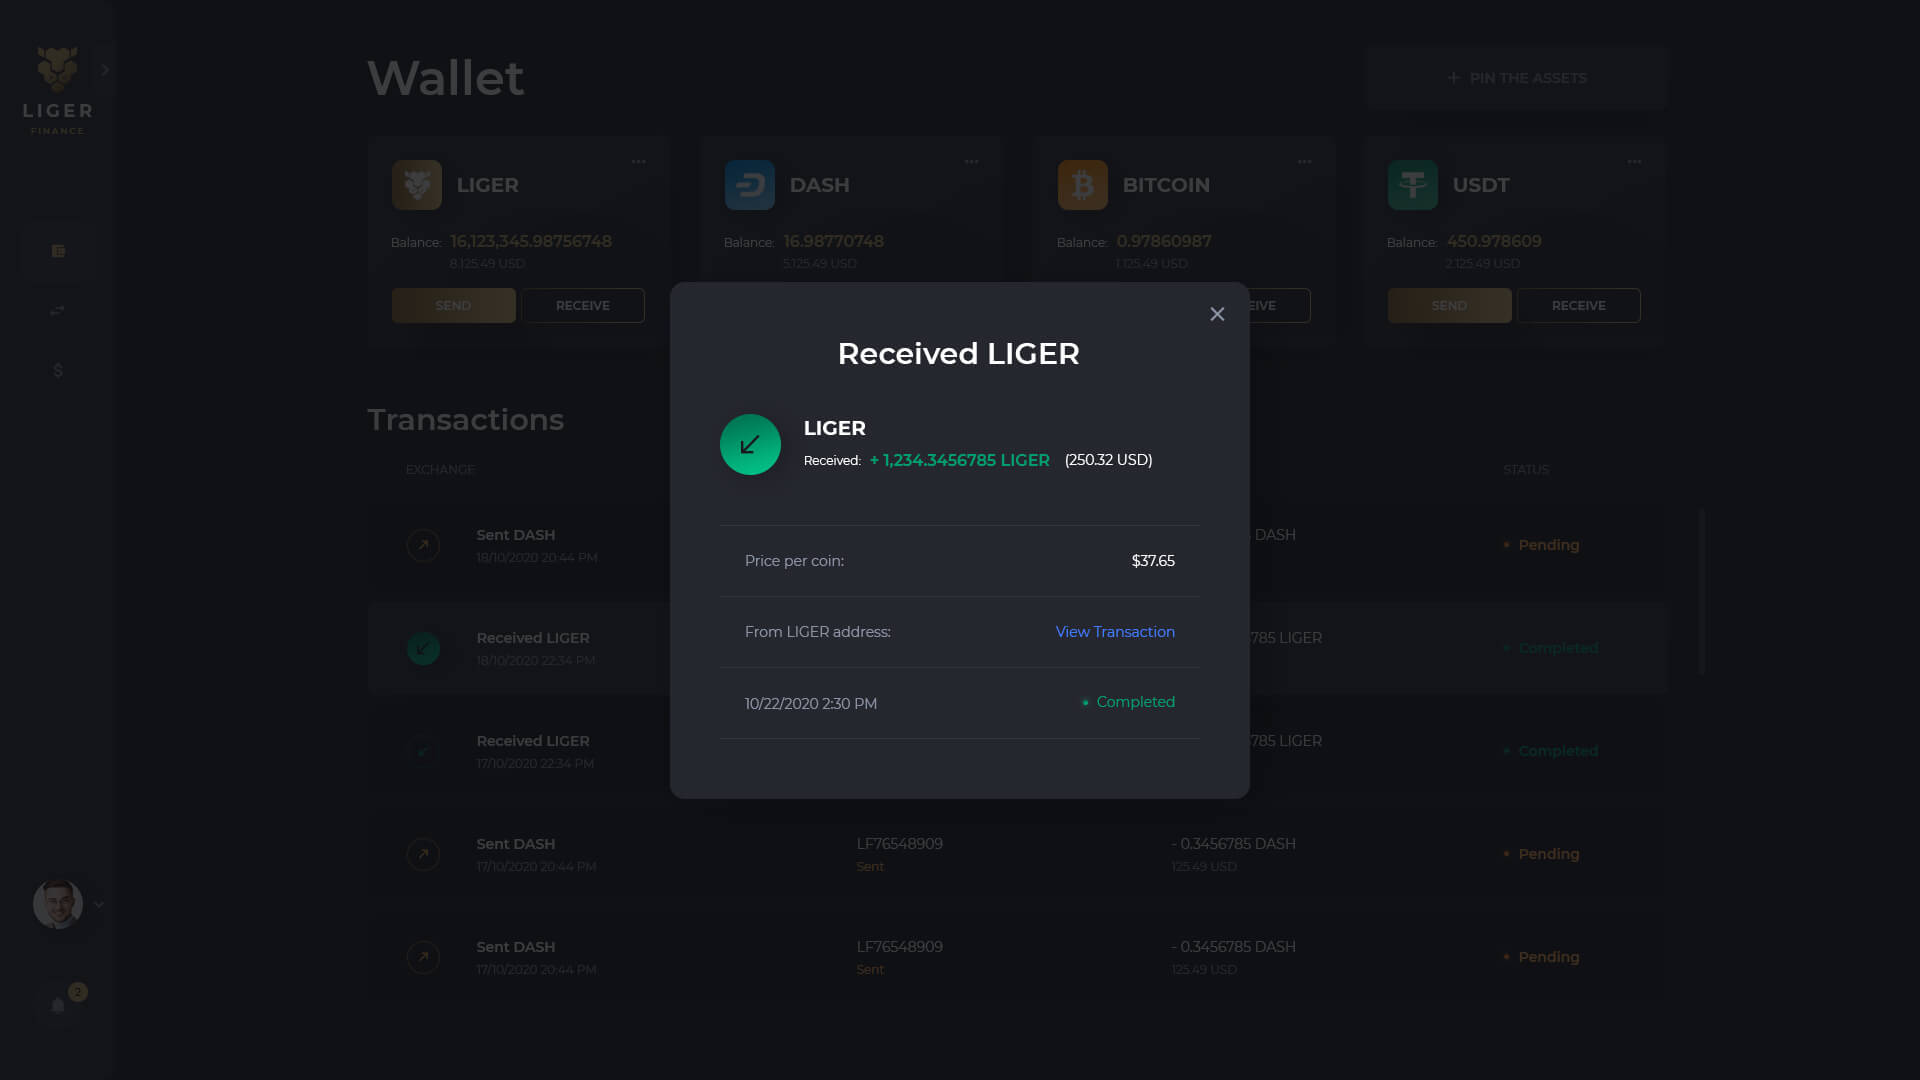 LIGER_03_Wallet_Pop_up_Transactions_Received_1.0